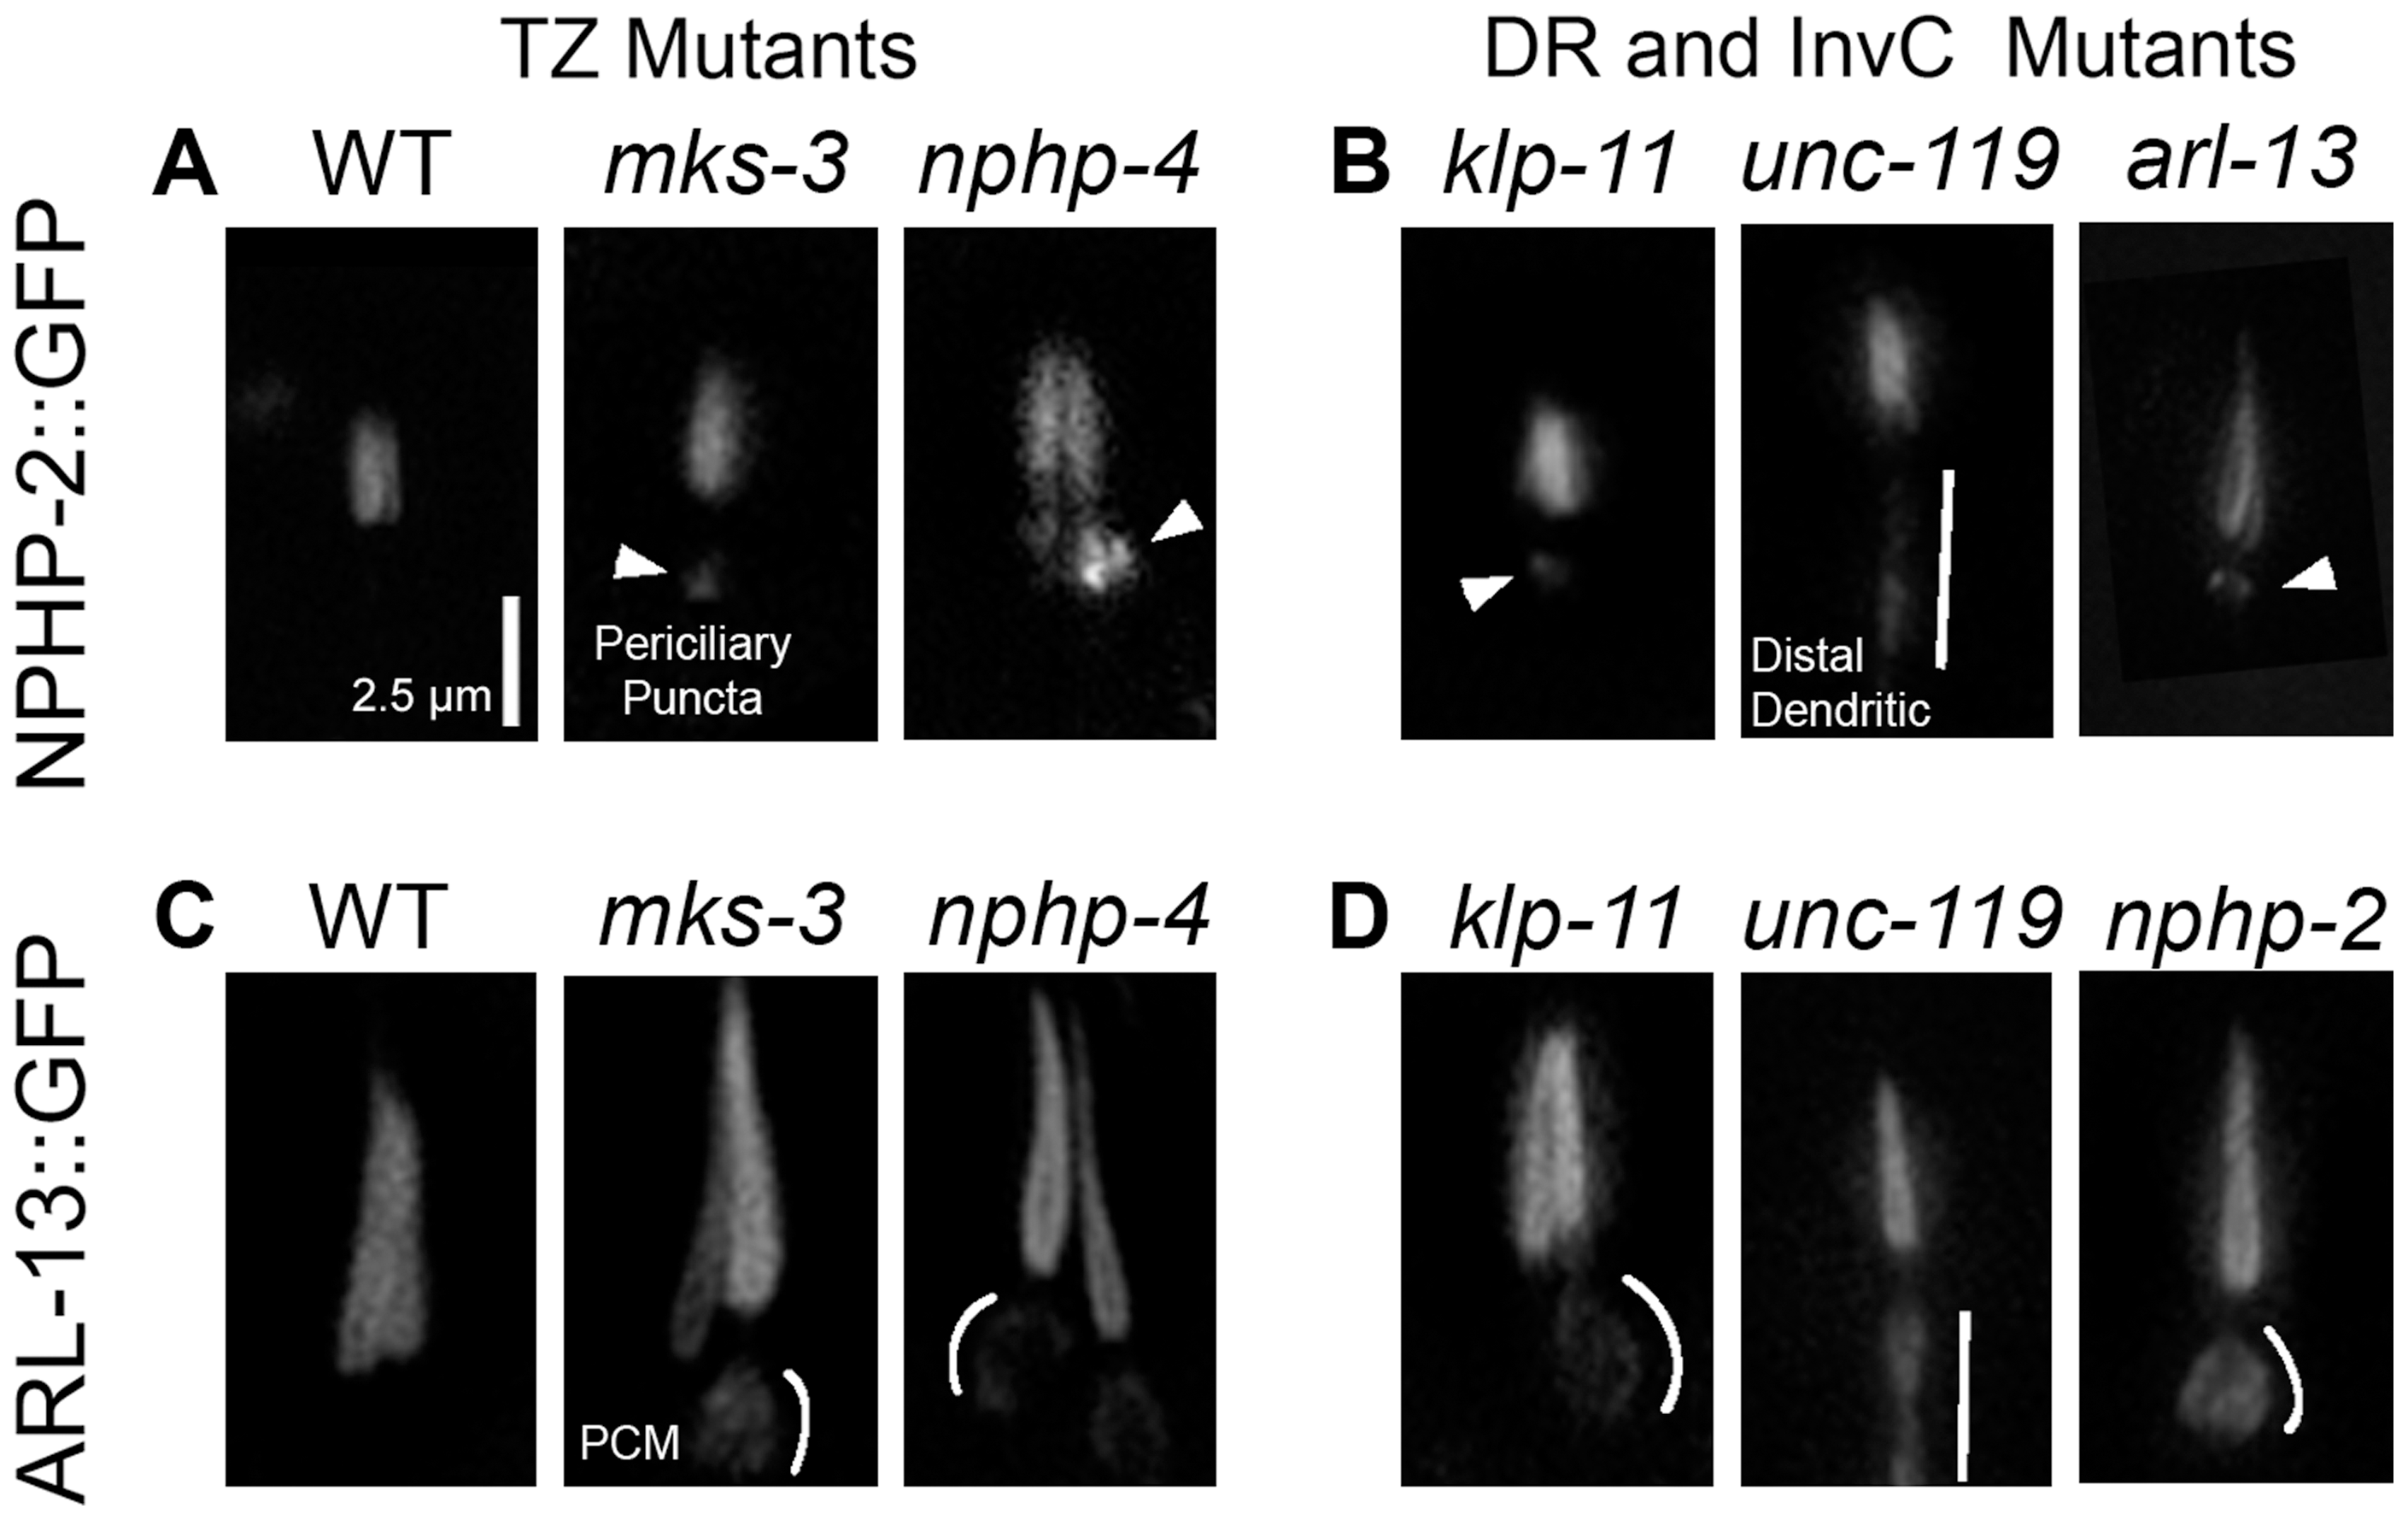 NPHP-2 and ARL-13 do not require TZ-, doublet region-, and InvC-associated genes for ciliary targeting.